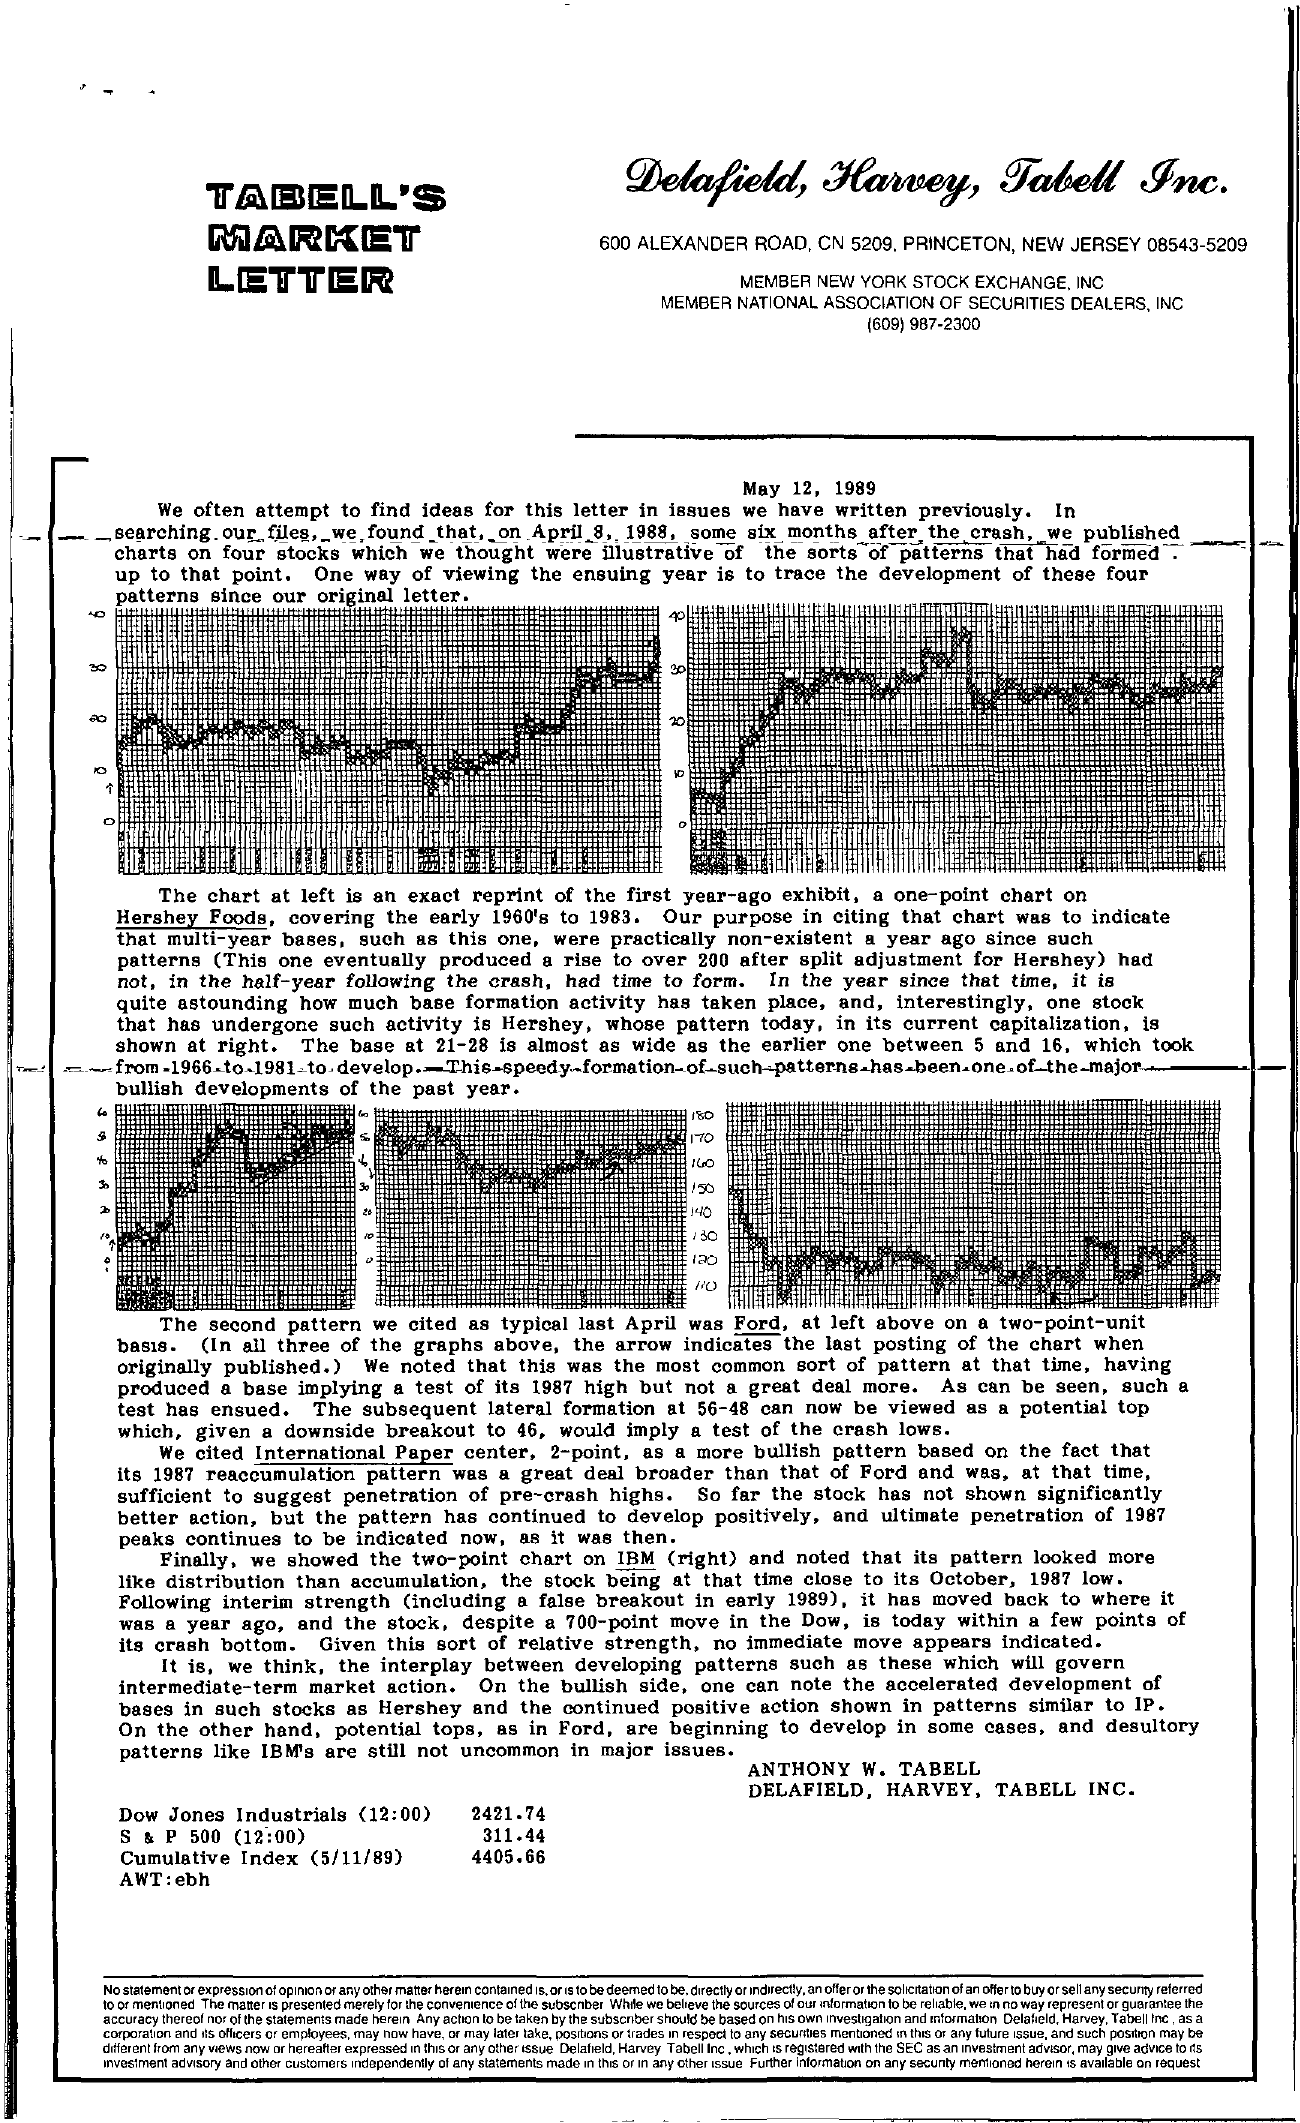 Tabell's Market Letter - May 12, 1989